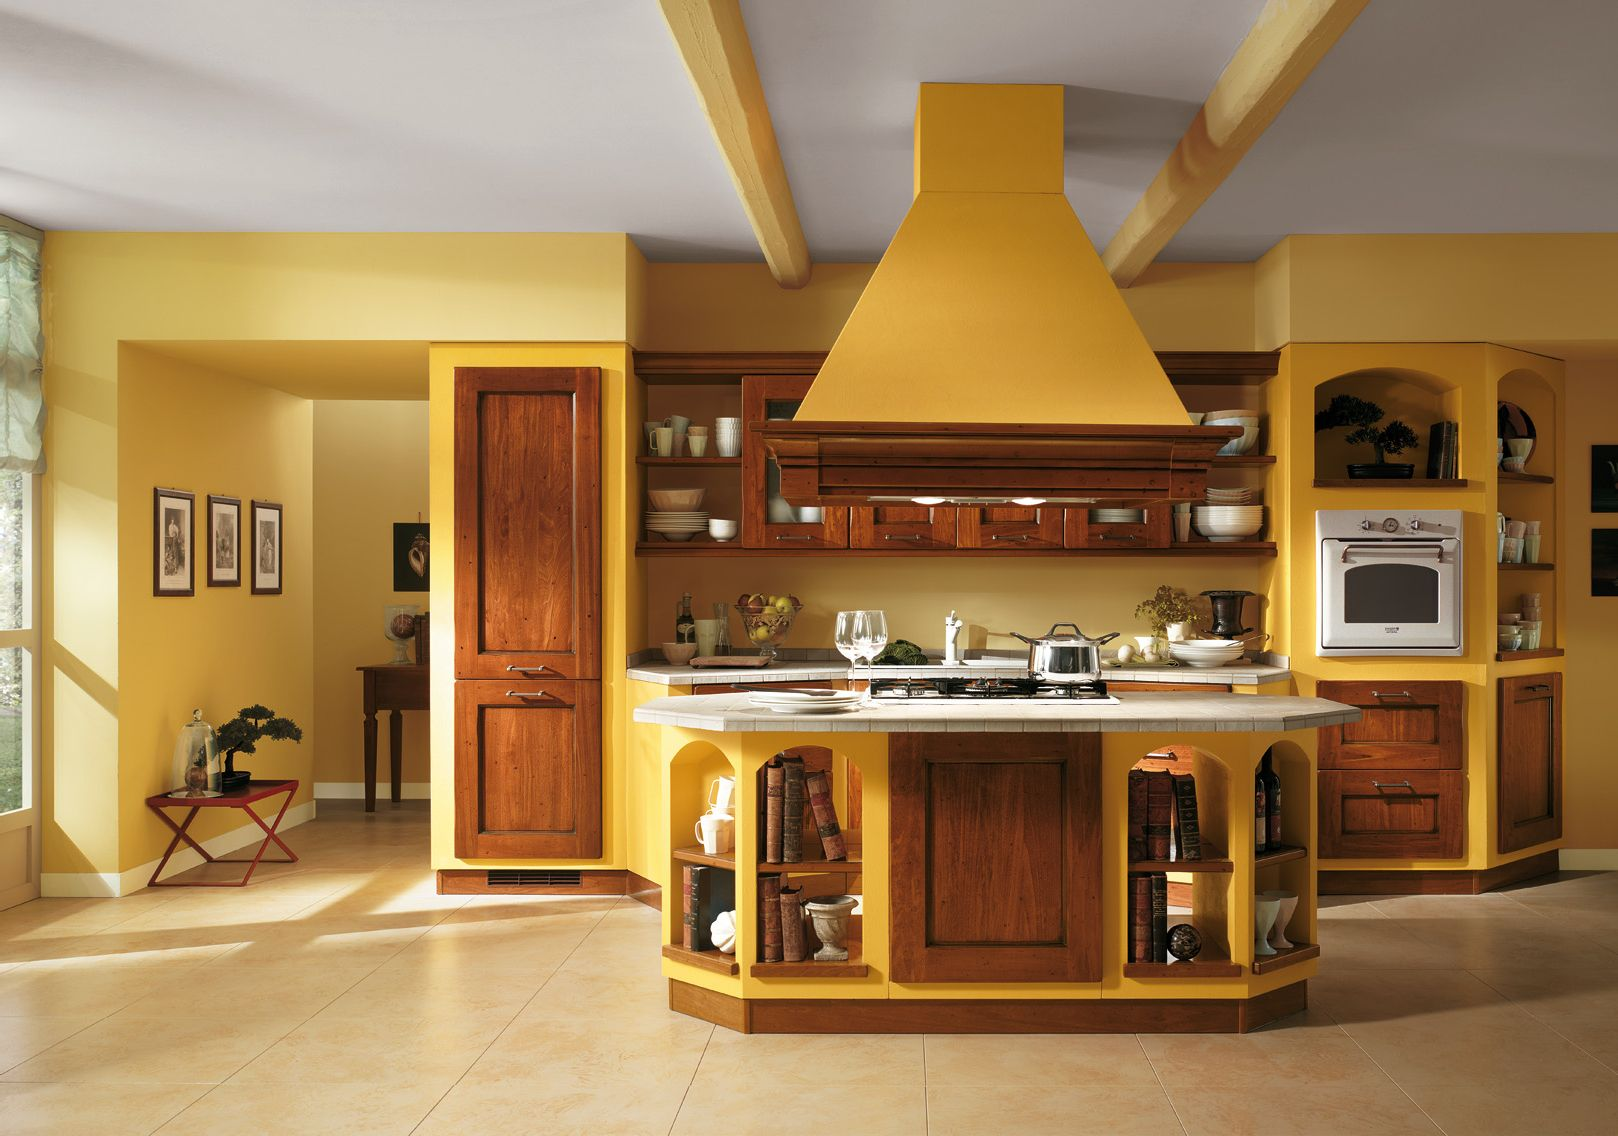 Italian kitchen color schemes for open interior design big chill pro line embraces fall colors Design colors for kitchen